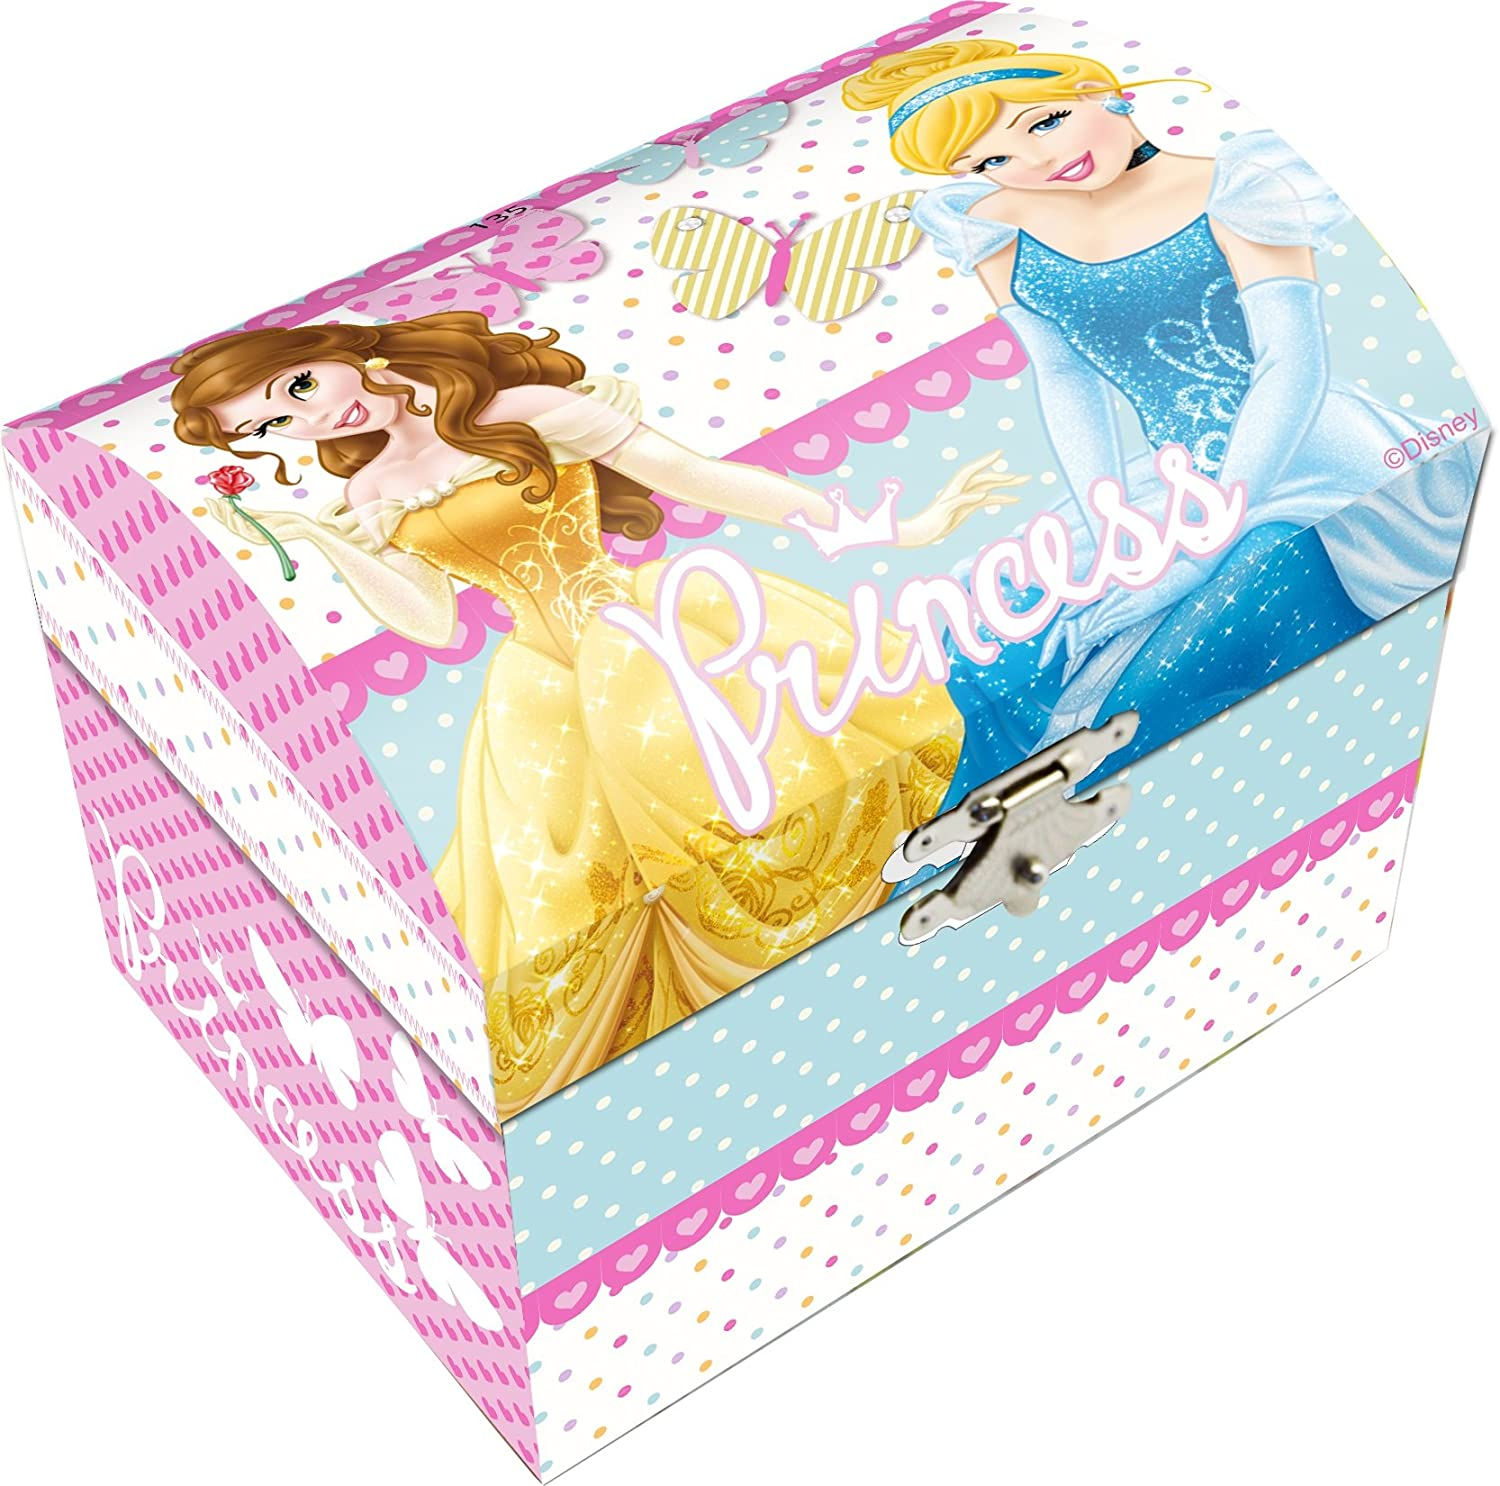 Made in Trade Boite à Bijoux Musicale Princess, WD90019 KIDS EUROSWAN